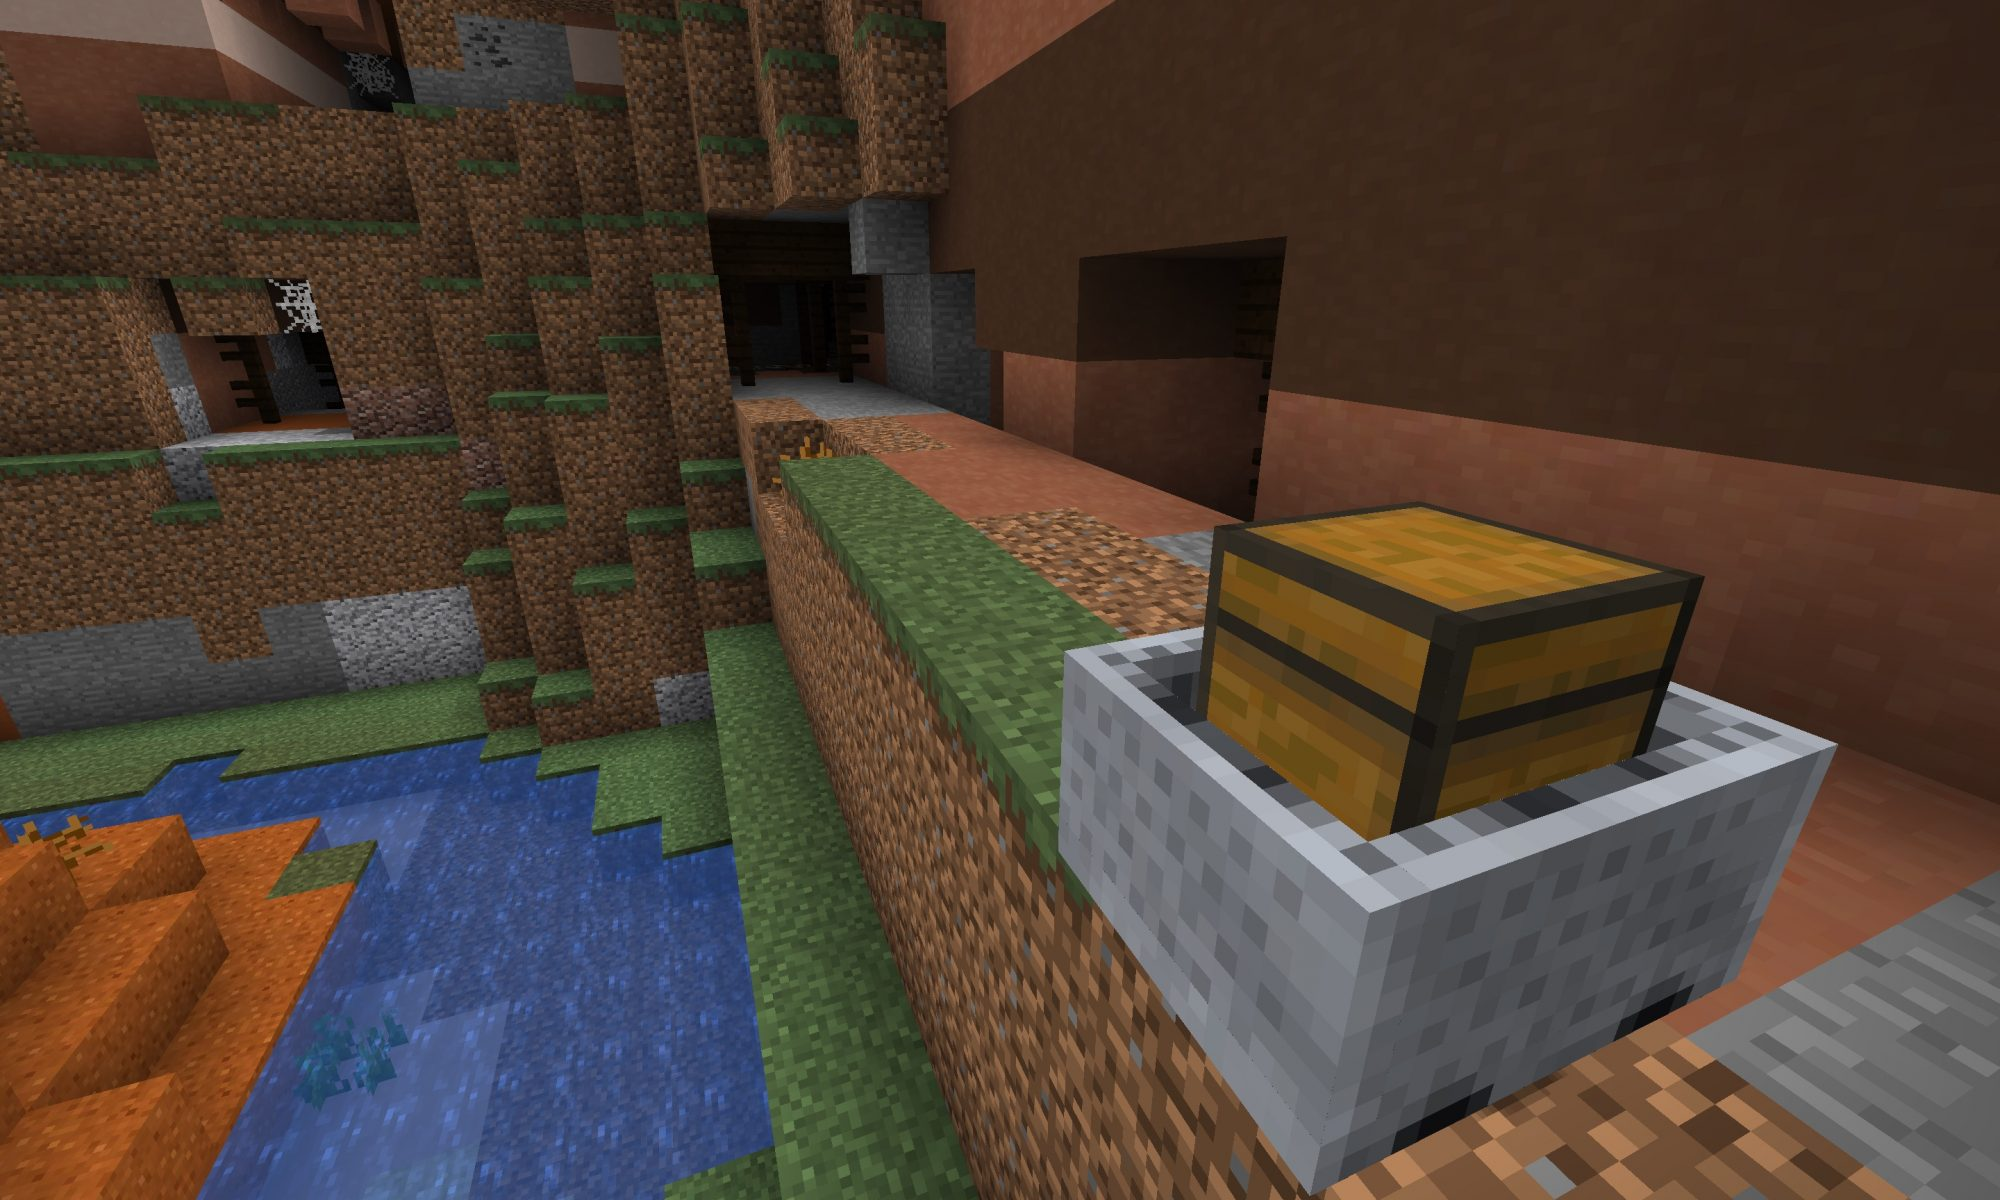 Minecraft Seed: Minecart with Chest x11